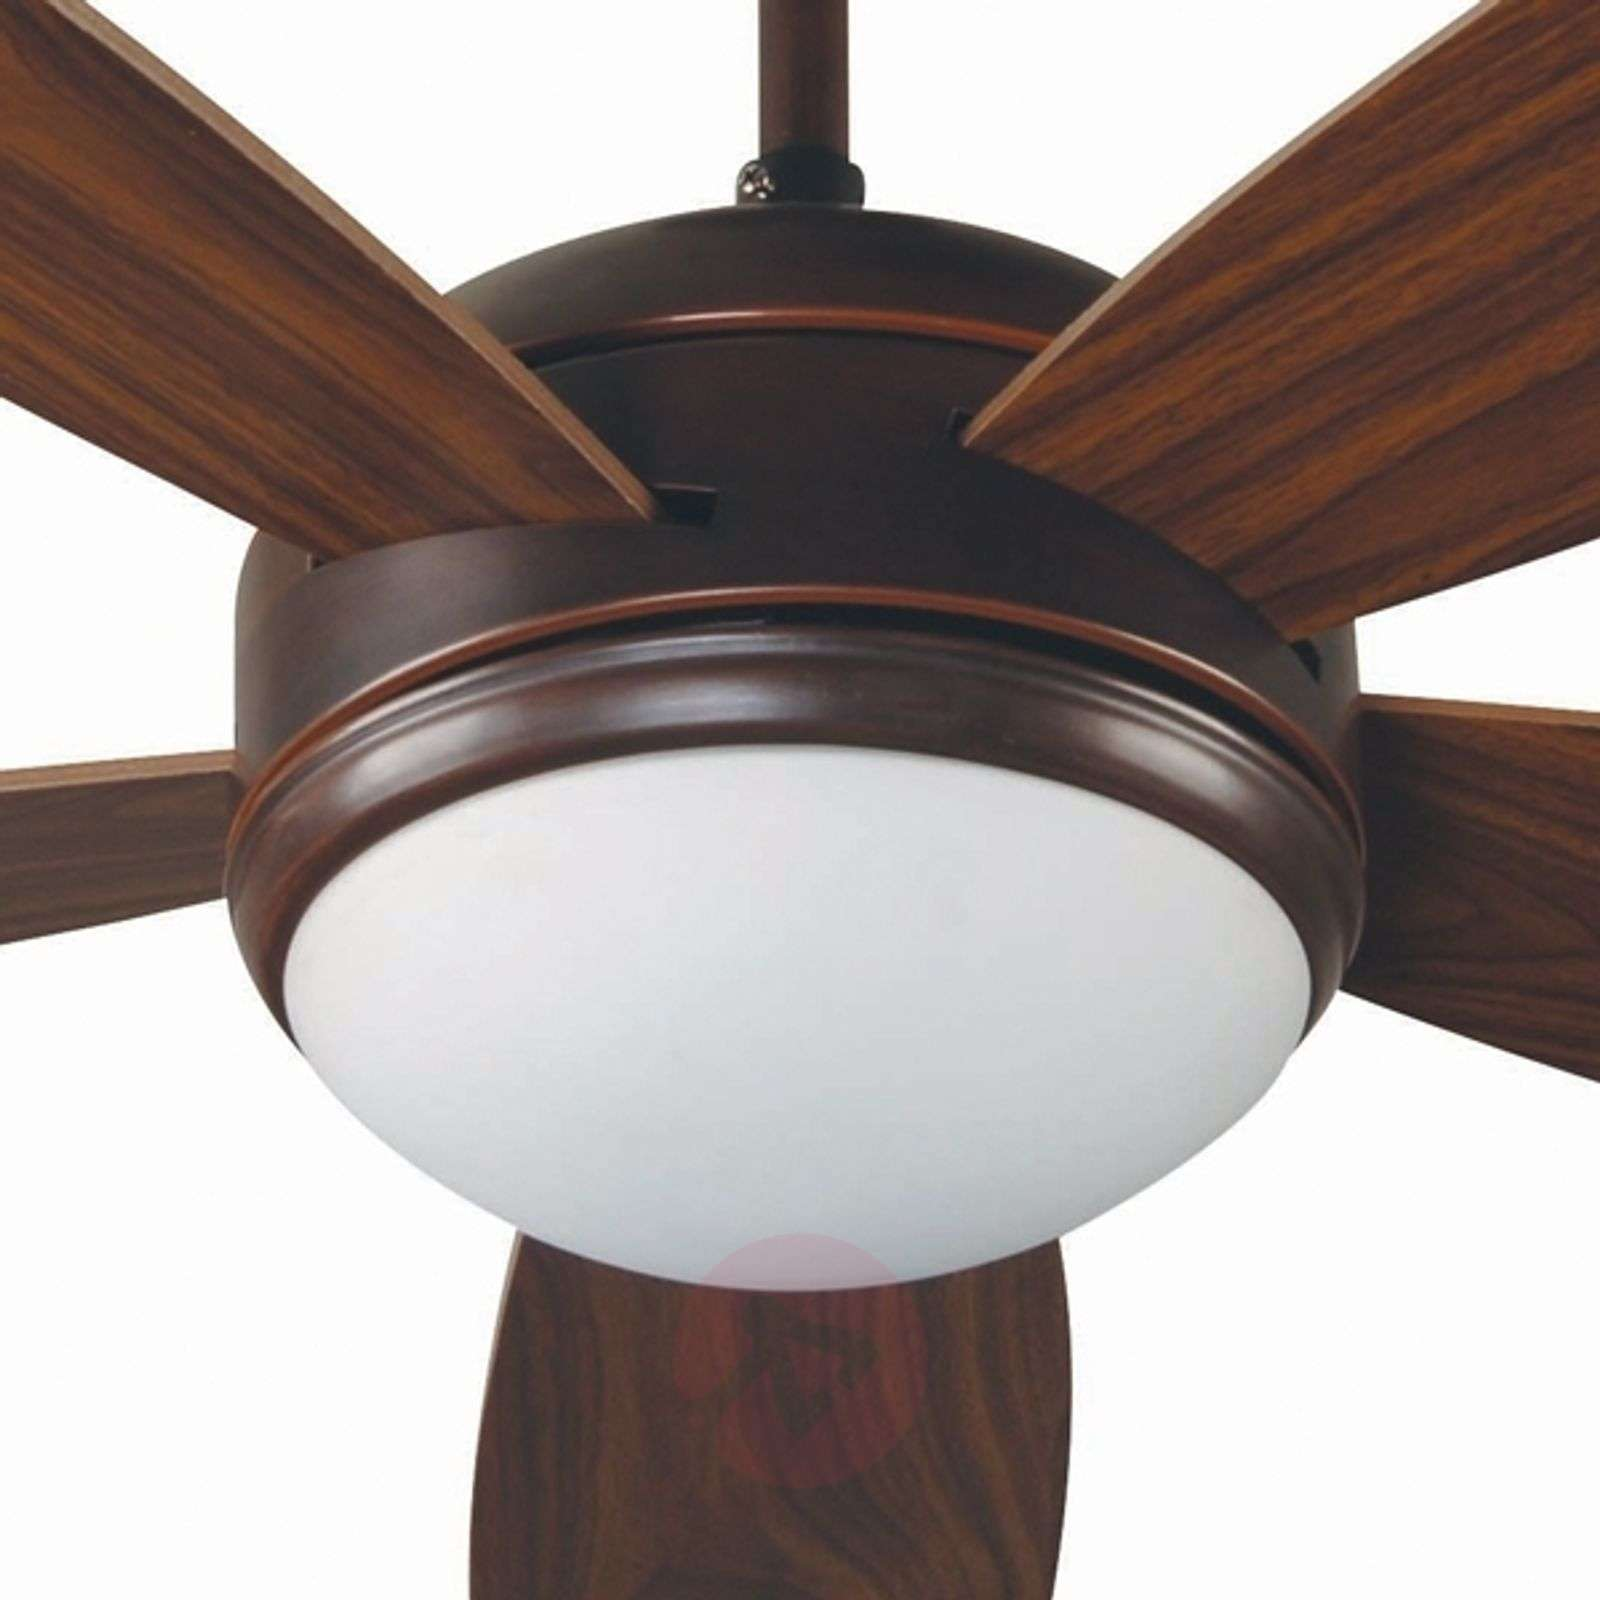 Vanu large ceiling fan with remote control brown lights vanu large ceiling fan with remote control brown 3506021 01 aloadofball Image collections